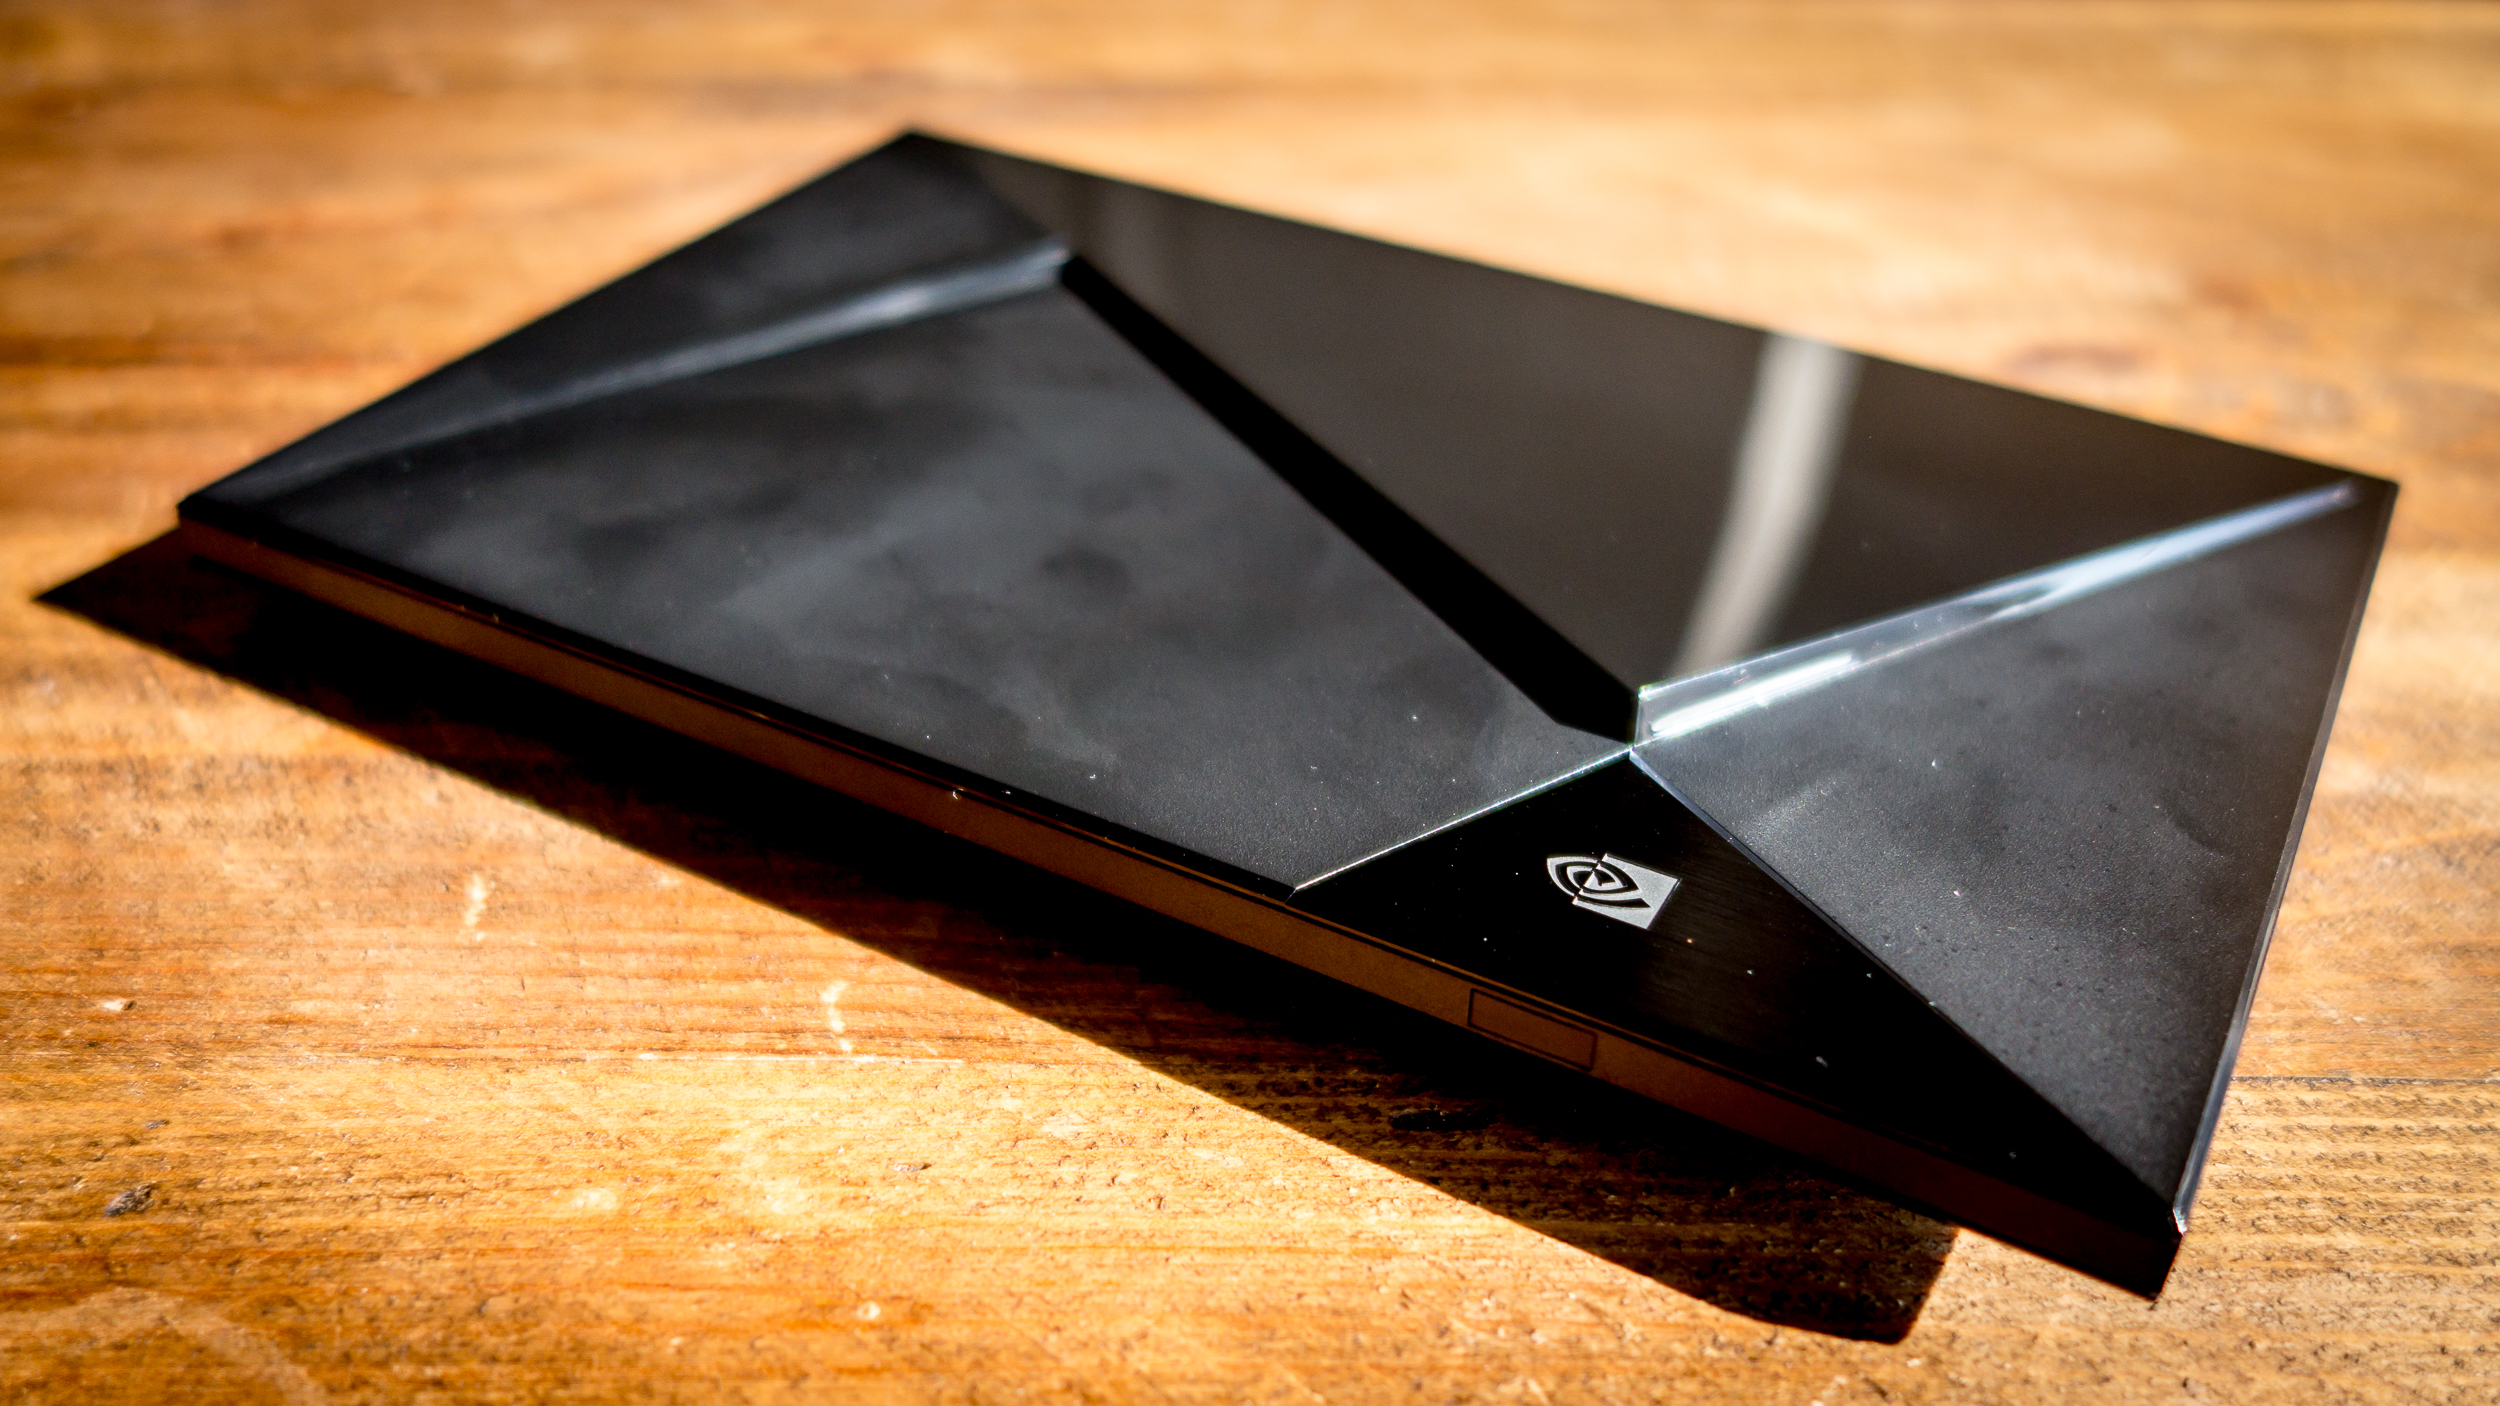 Nvidia Shield Android TV: A powerful do-it-all box that lacks